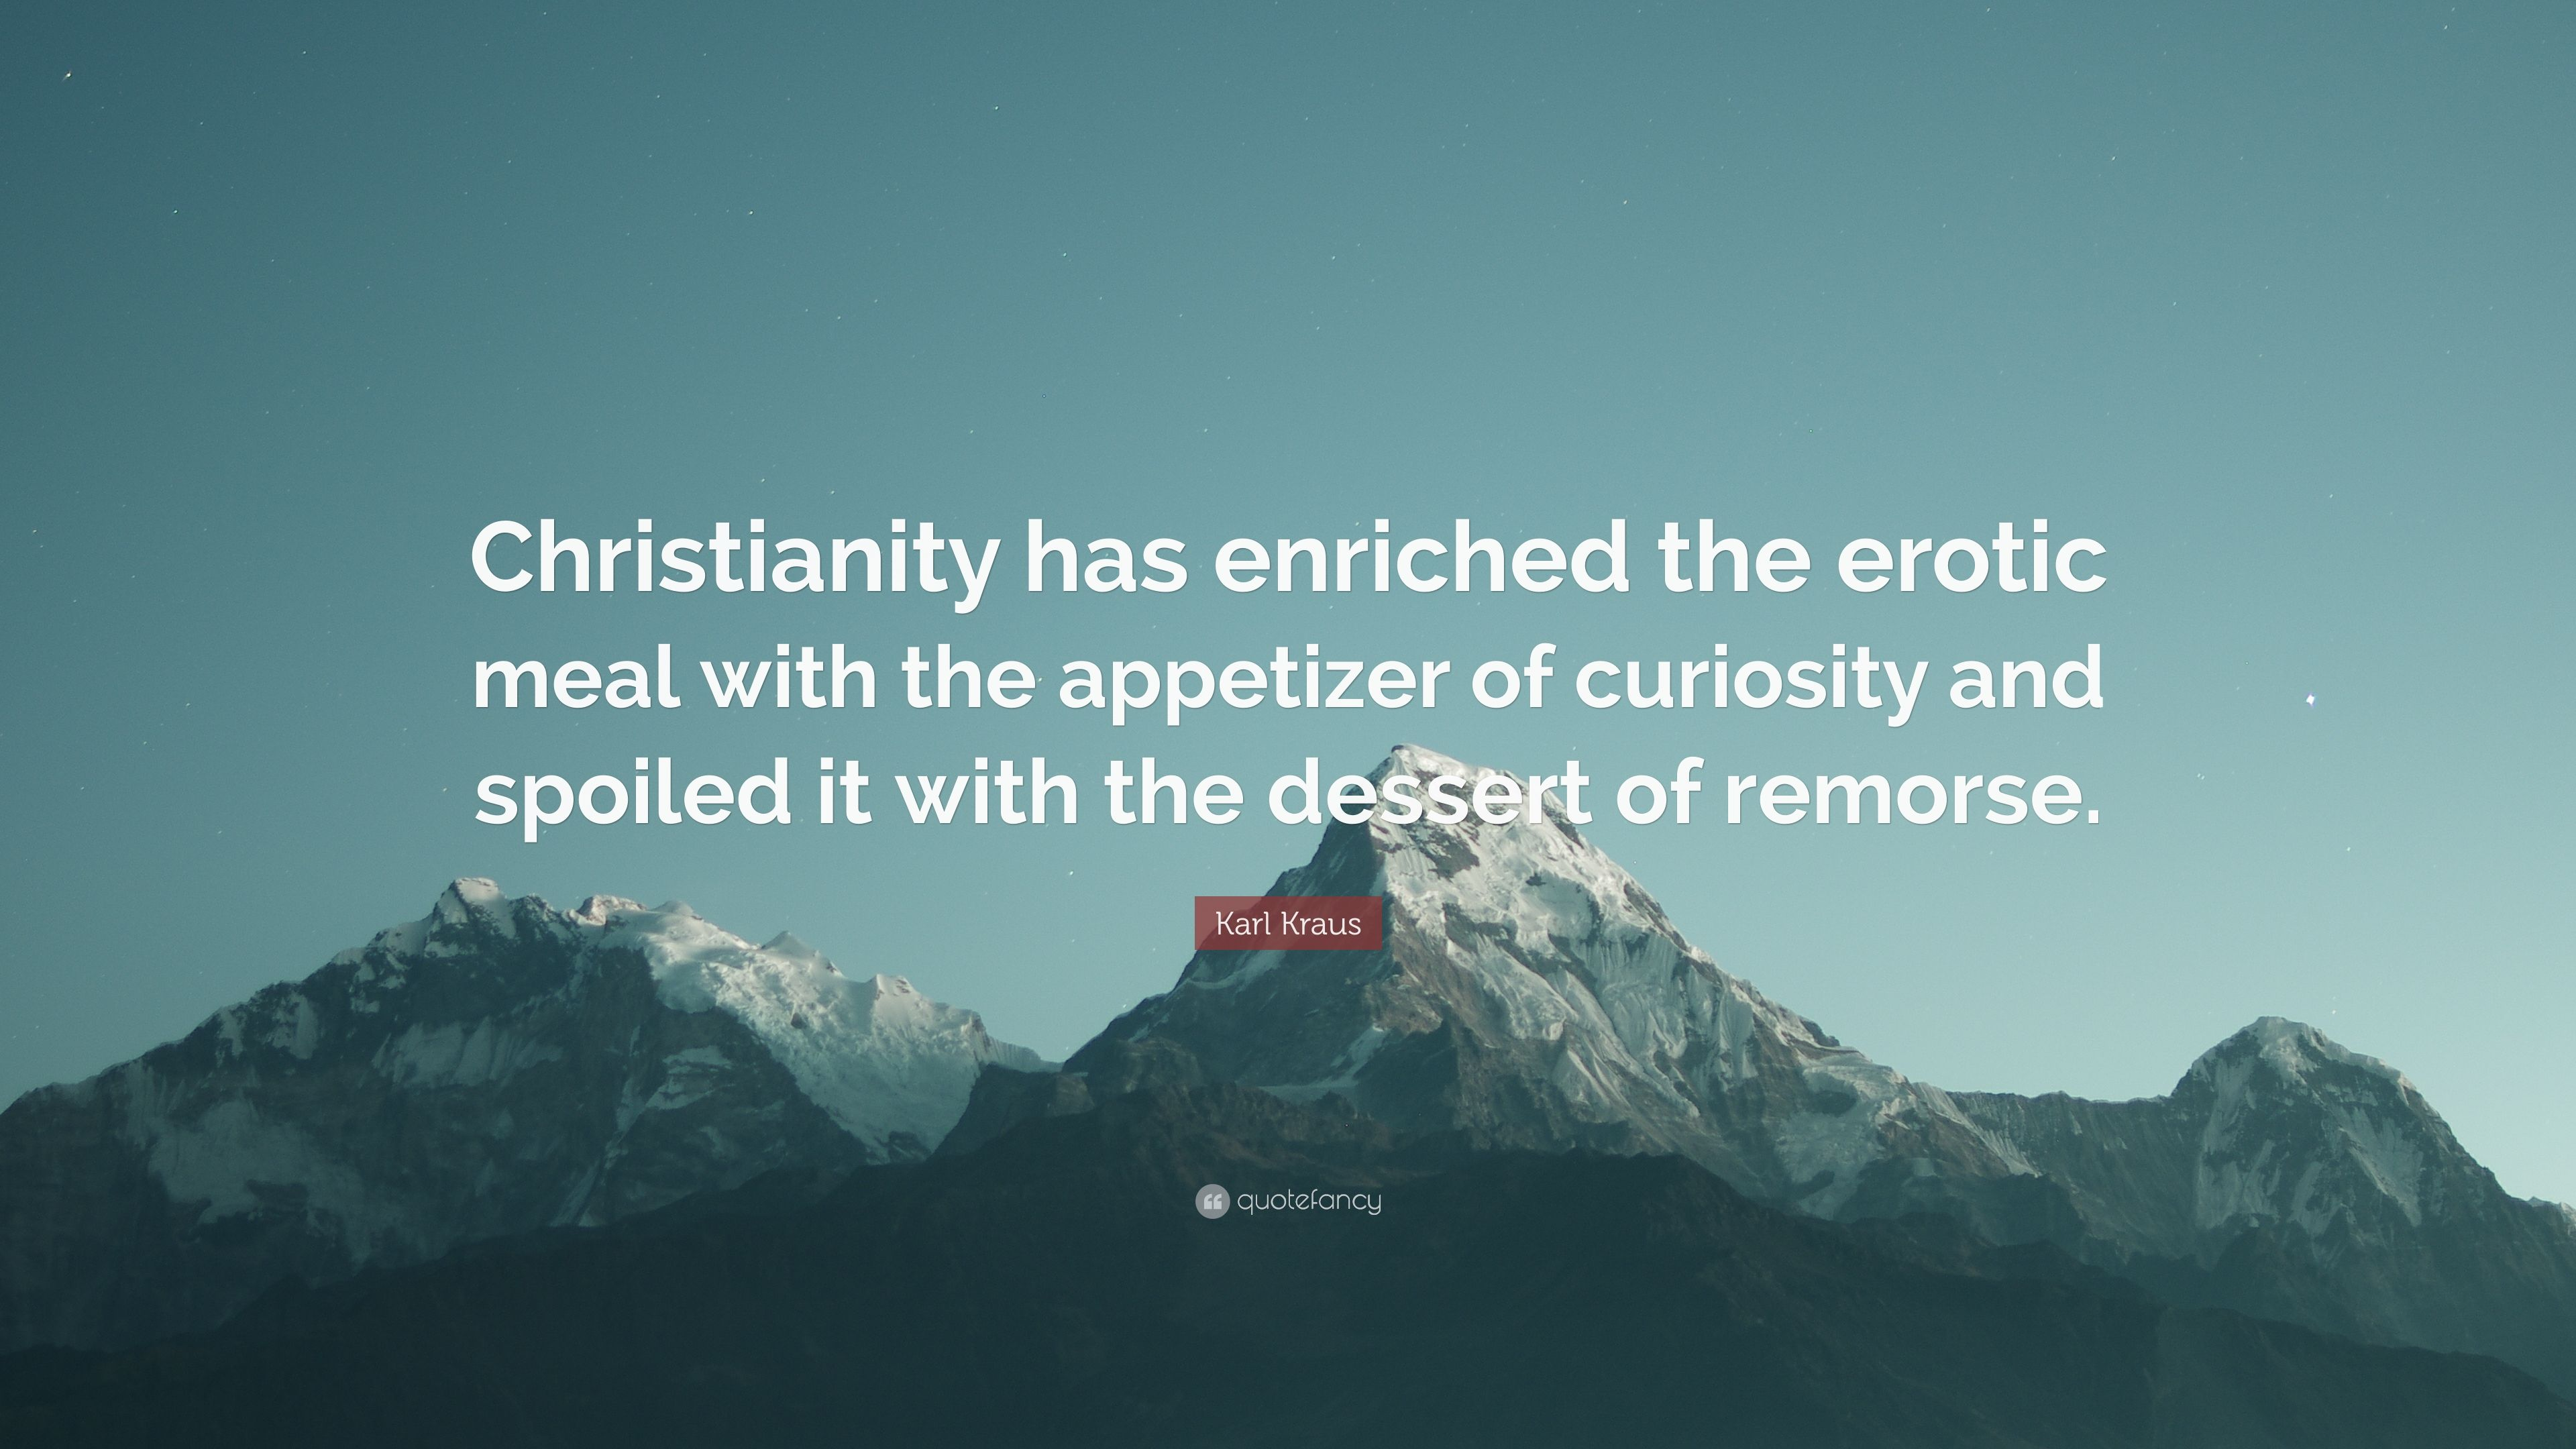 Karl Kraus Quote Christianity Has Enriched The Erotic Meal With The Appetizer Of Curiosity